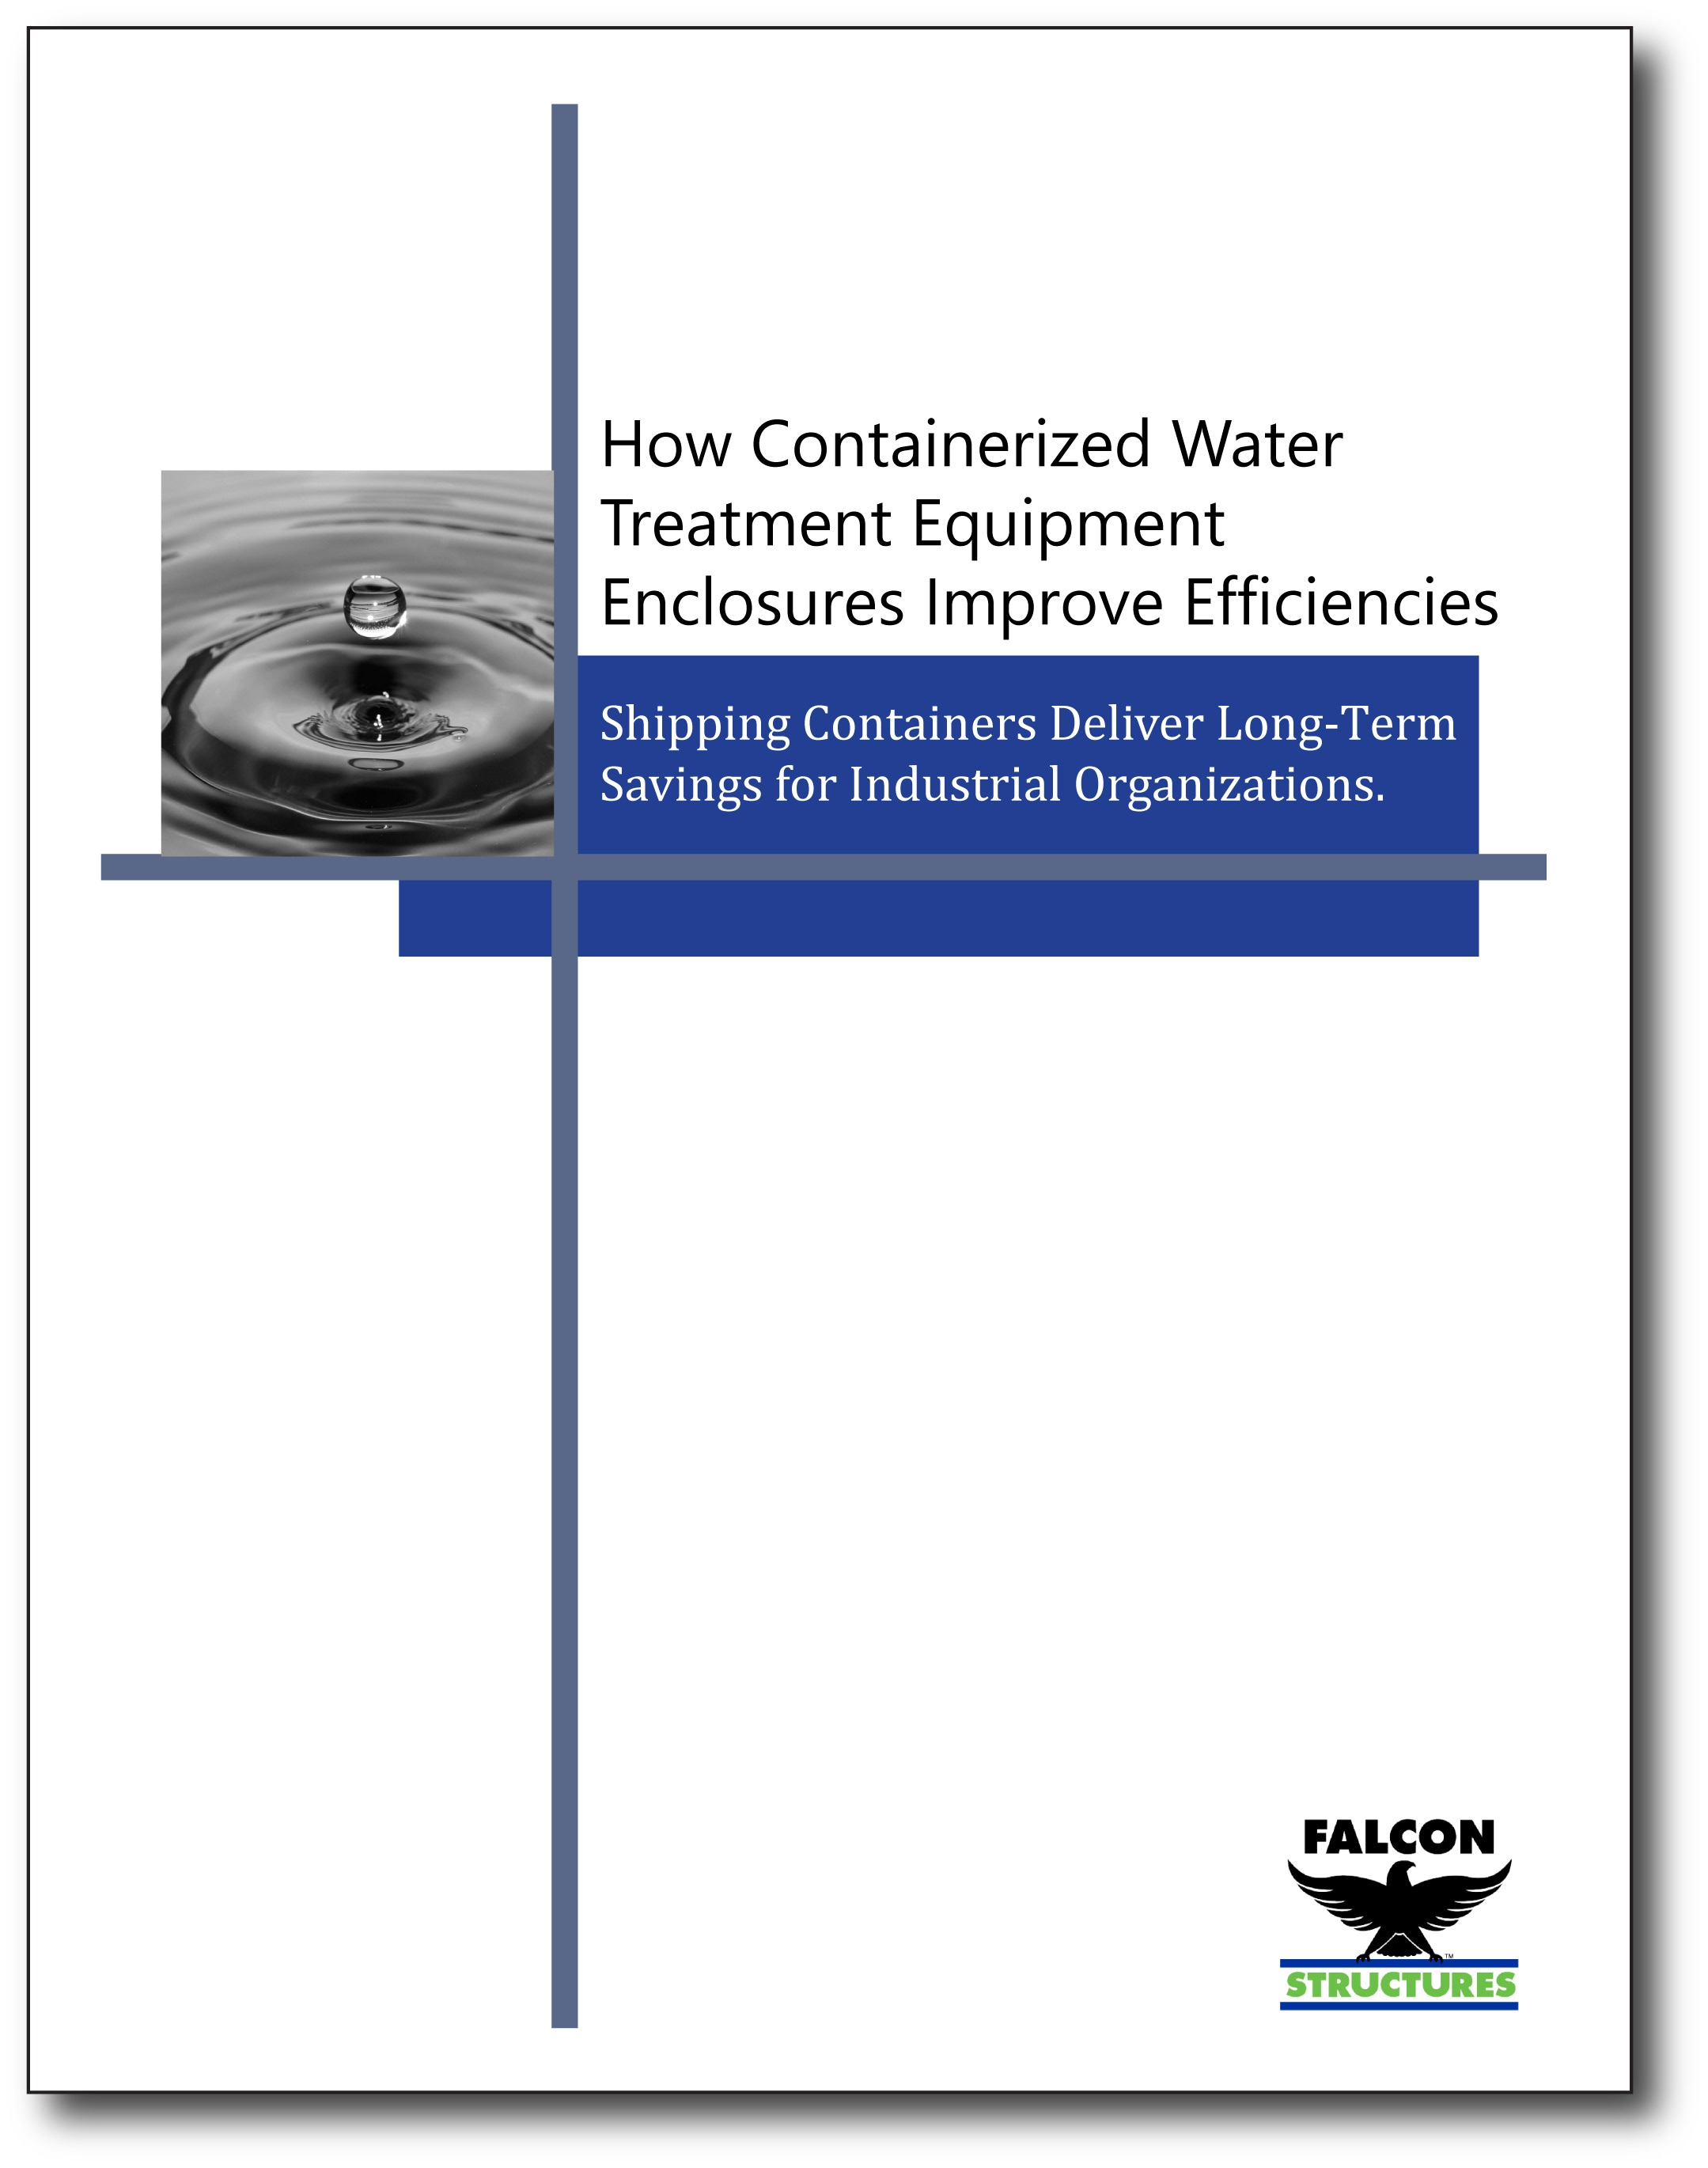 Click to download our guide, How Containerized Water Treatment Equipment Enclosures Improve Efficiencies.